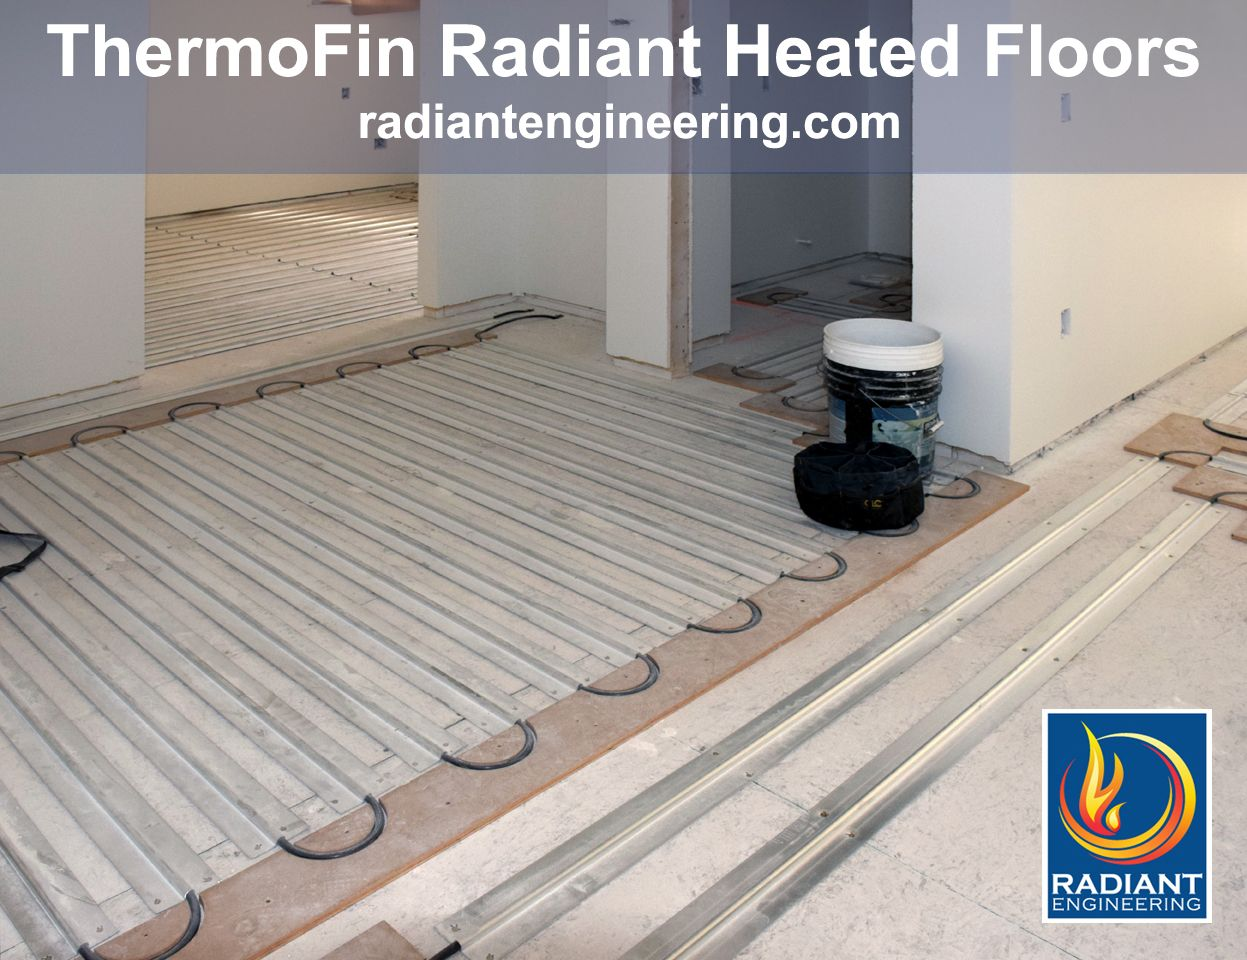 Radiant floor heating with thermofin extruded aluminum heat radiant floor heating with thermofin extruded aluminum heat transfer plates patented by radiant engineering inc dailygadgetfo Image collections